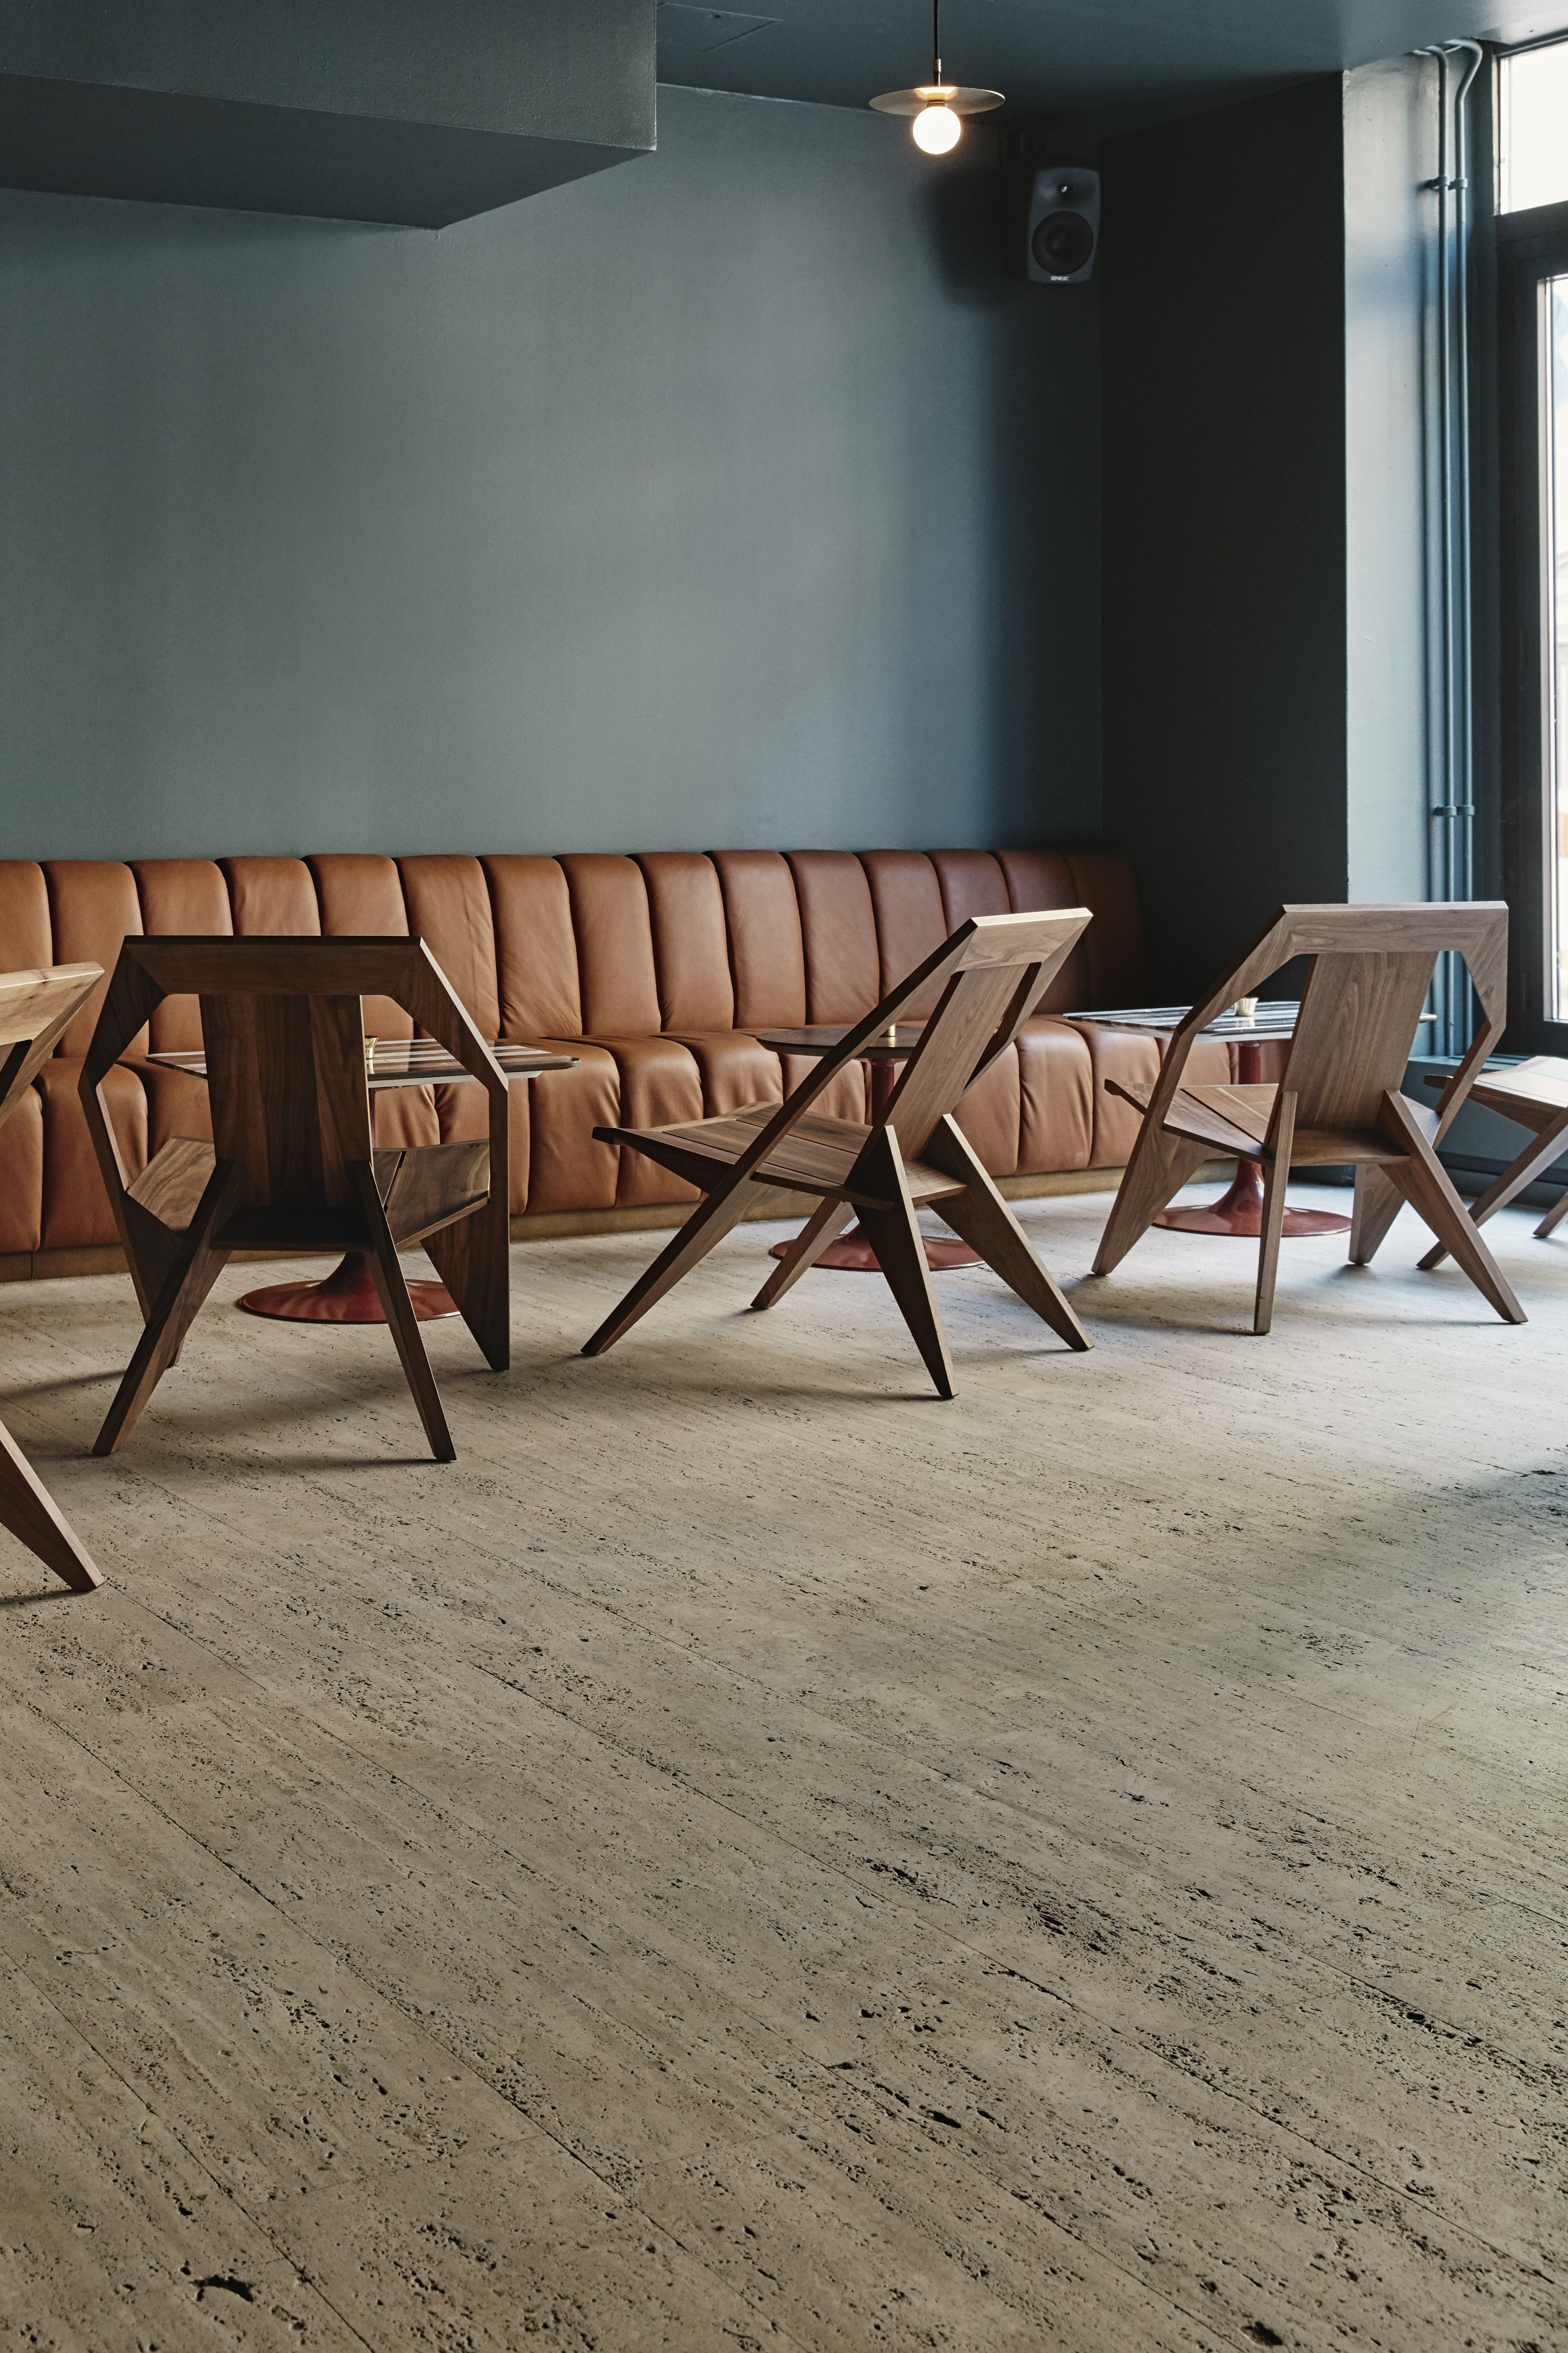 dwell modern lounge furniture. A New Bar In Helsinki Channels Retro Soundtrack And Midcentury Milanese Hotel Lounge - Dwell Modern Furniture